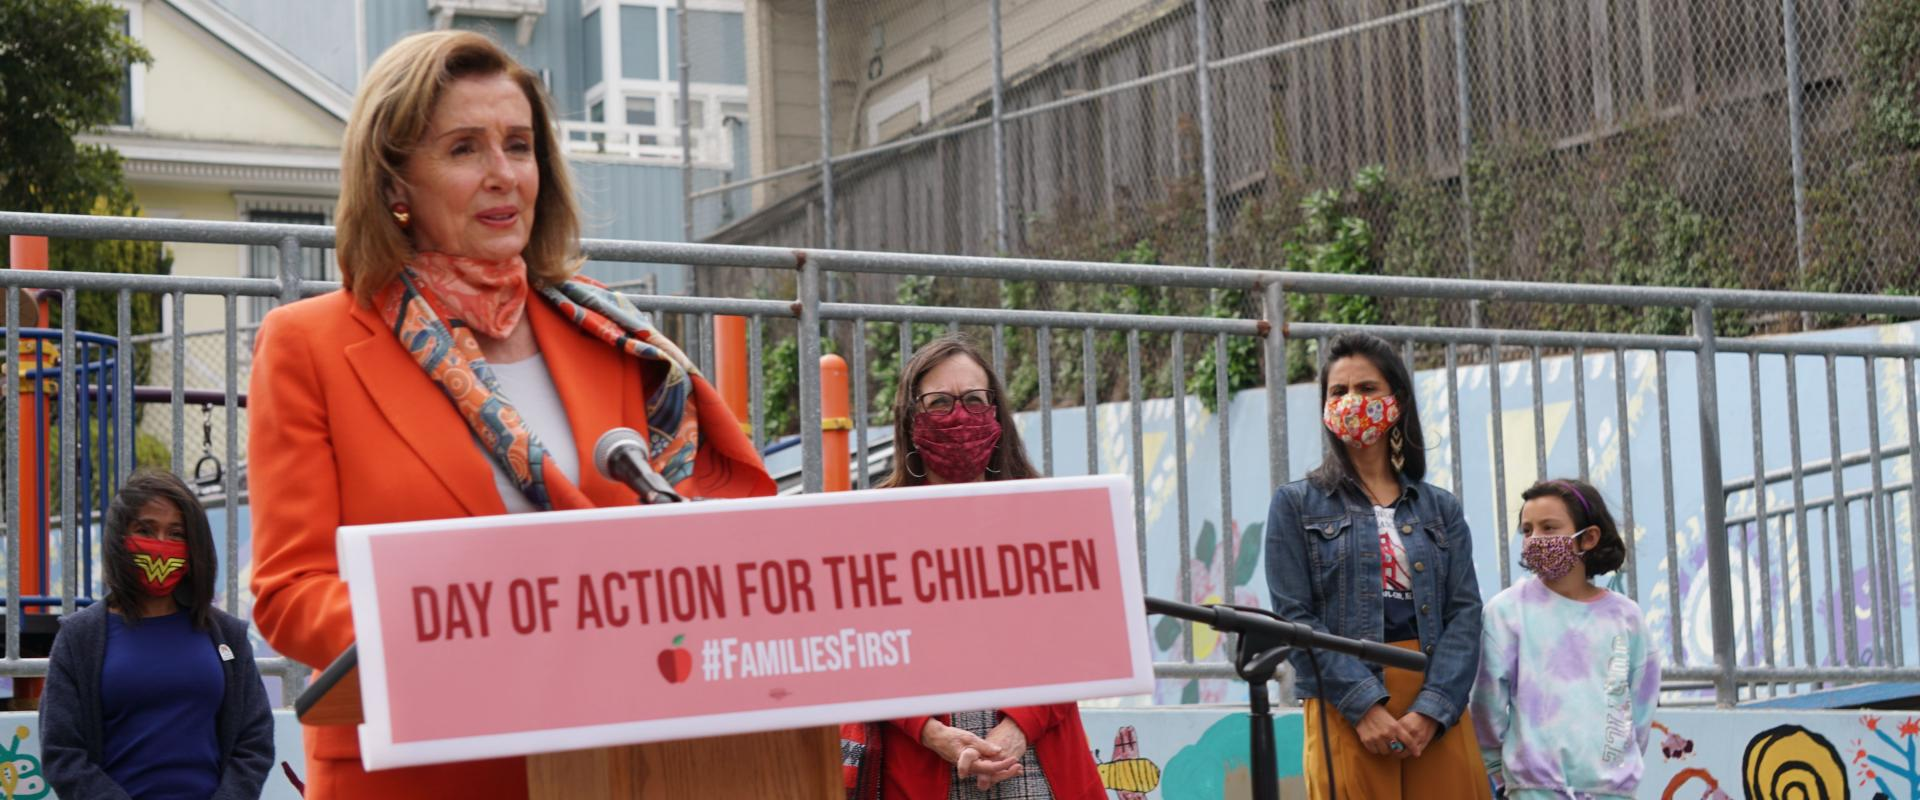 Congresswoman Nancy Pelosi joined San Francisco educators and leaders at Mission Education Center Elementary School to highlight the impact of the pandemic on children and families;  underscoring the urgent need for the Senate to pass the Heroes Act, whic